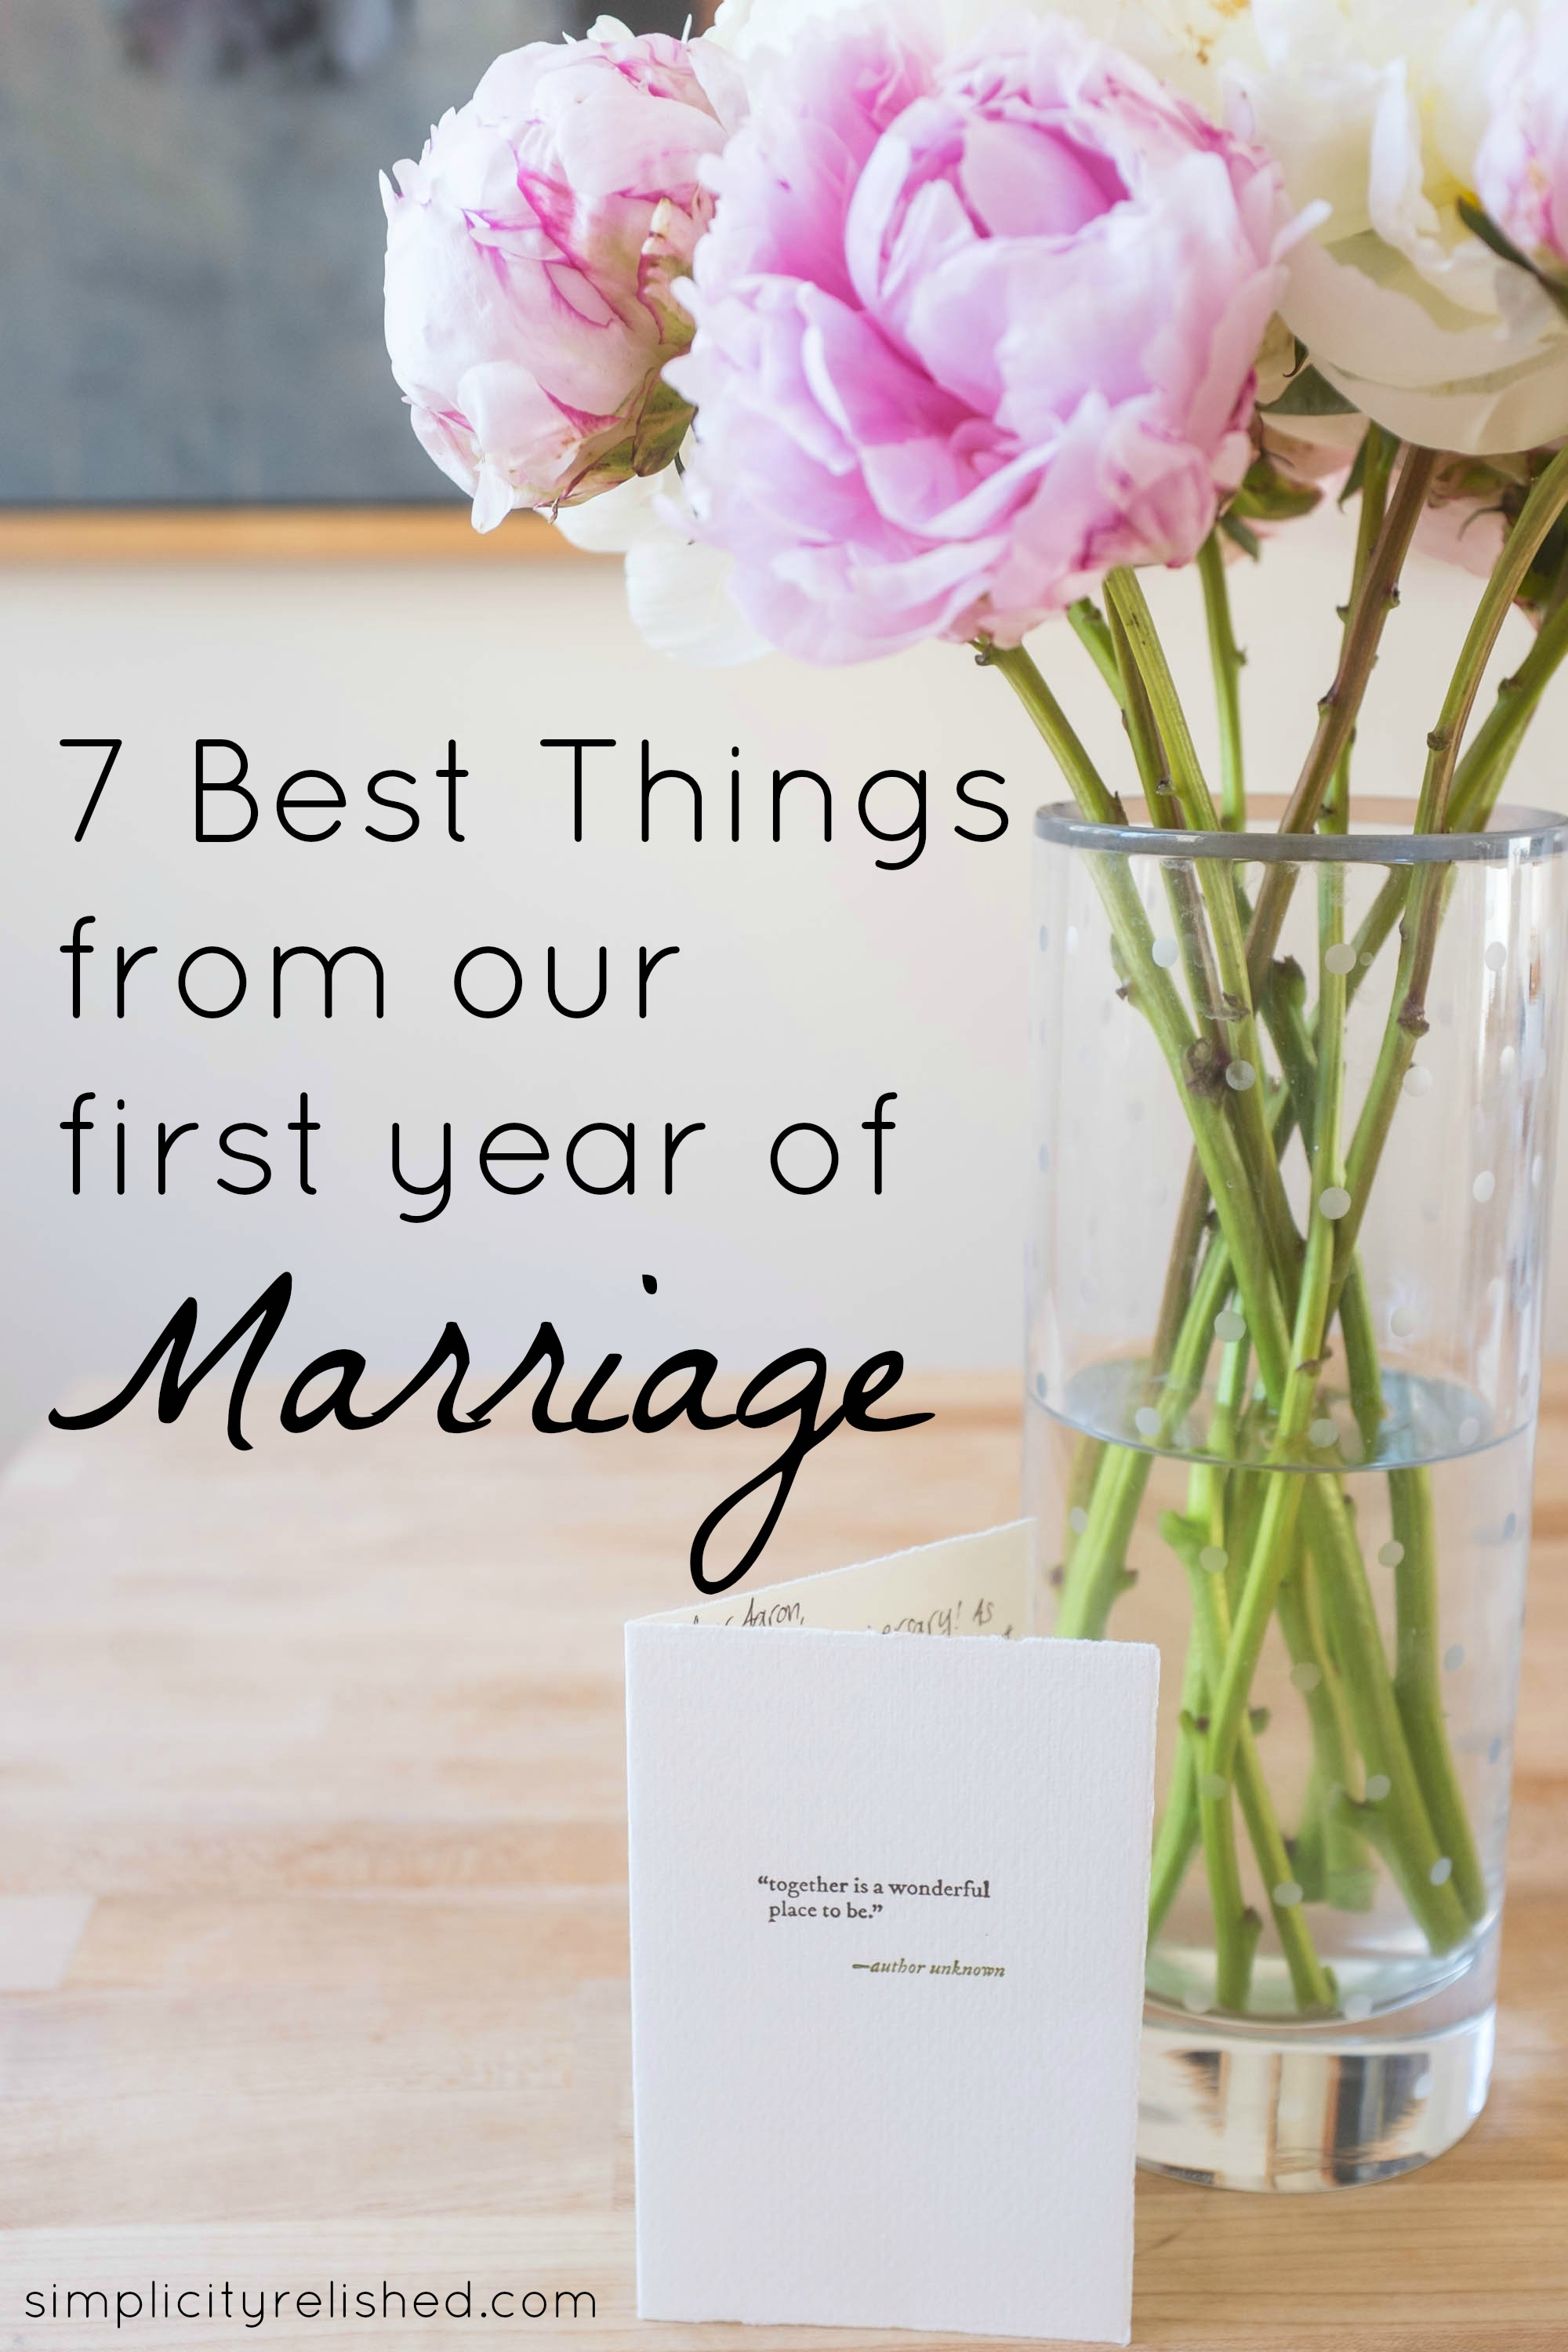 7 superlatives from our first year of marriage